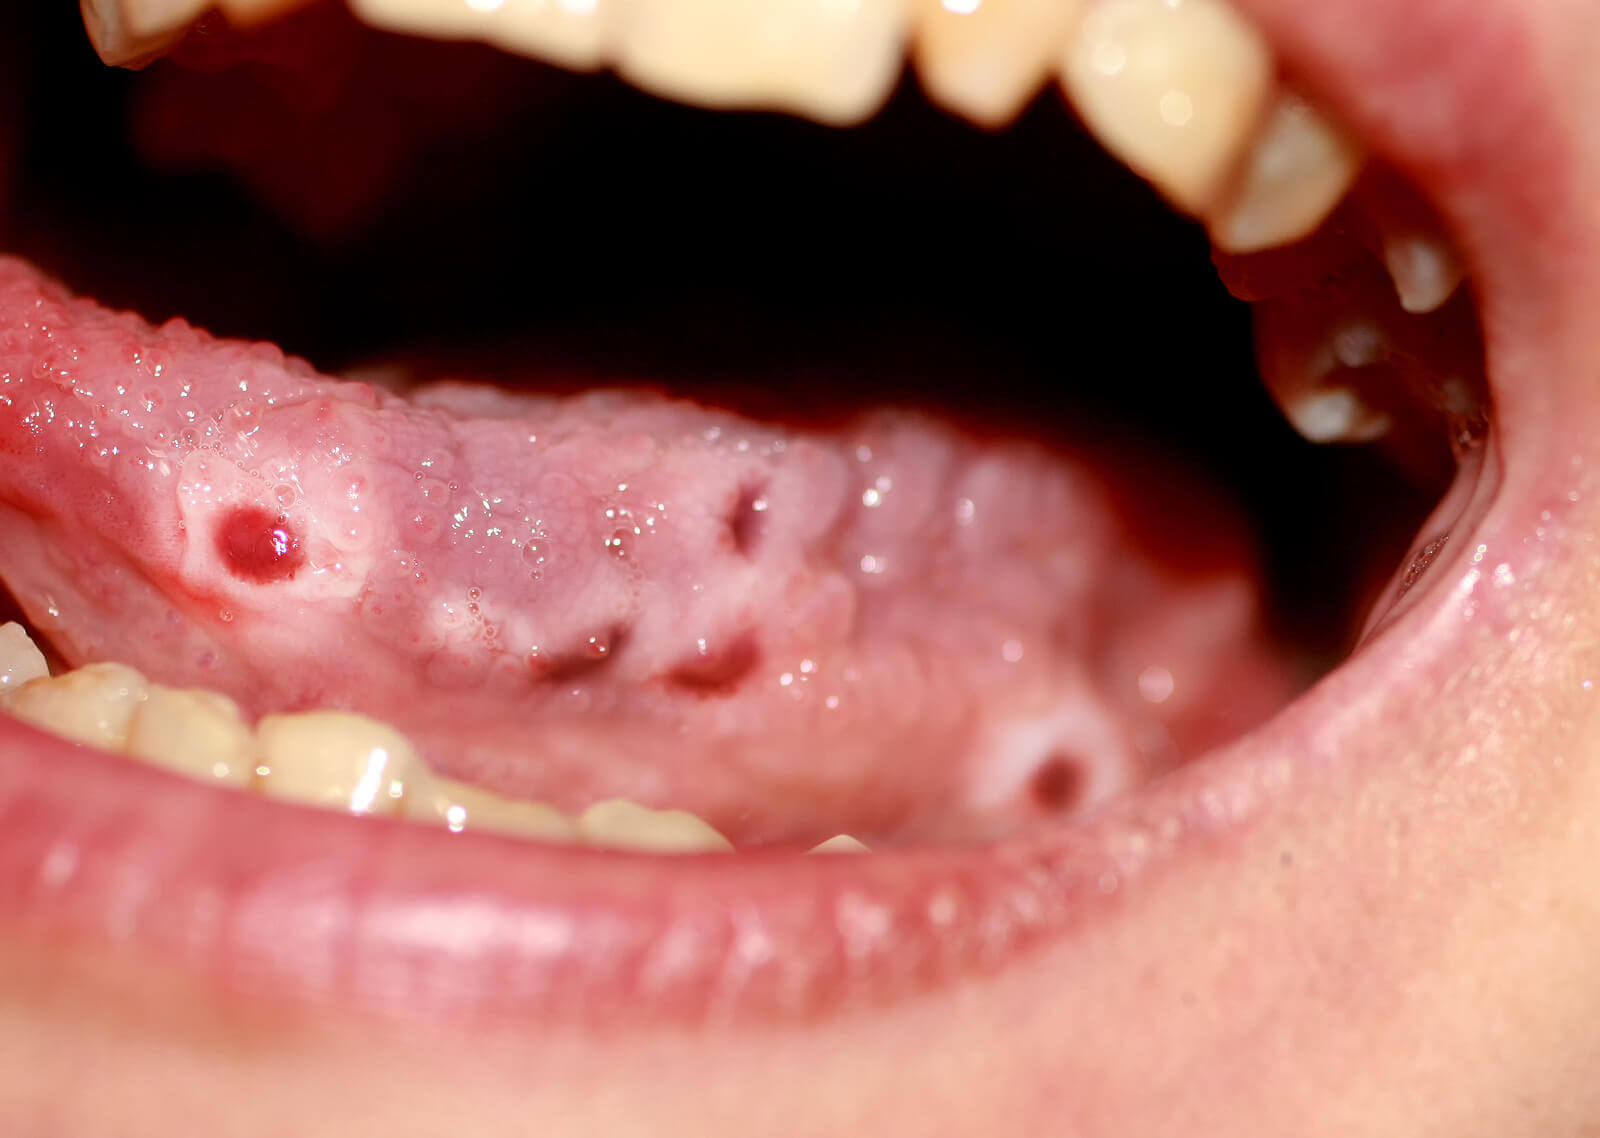 Cold sores on a tongue.